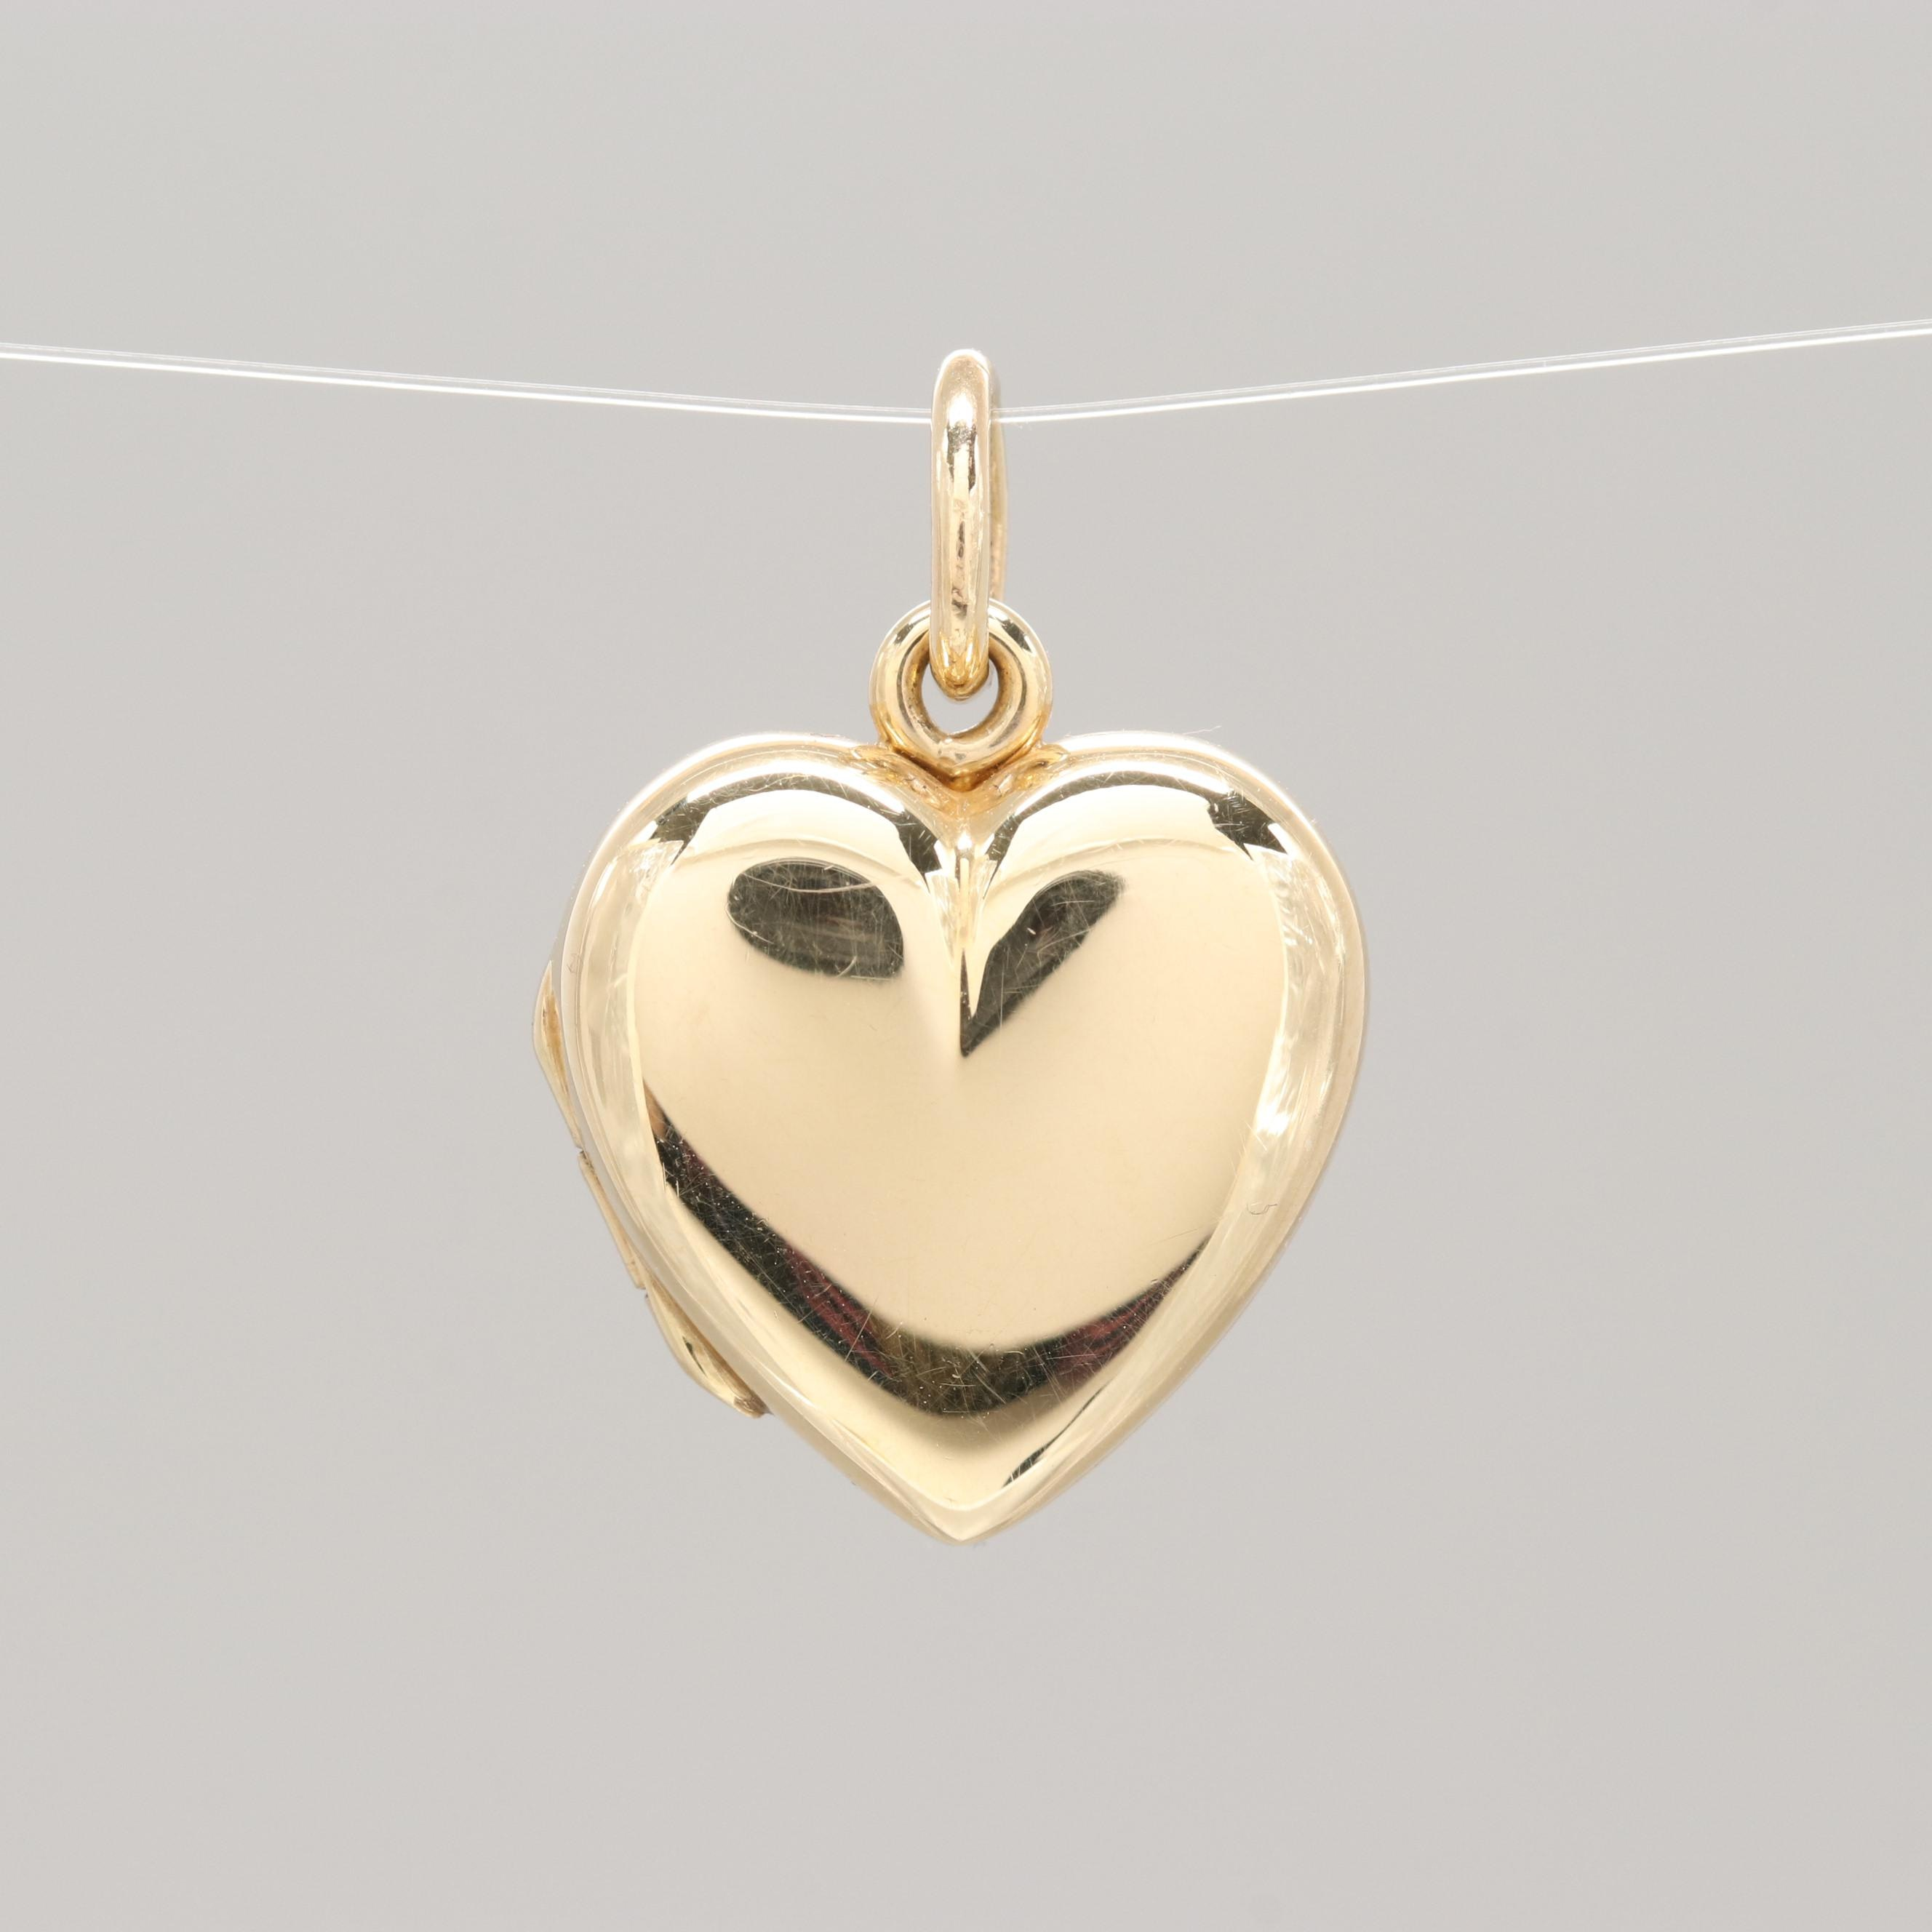 Tiffany & Co. 14K Yellow Gold Heart Locket